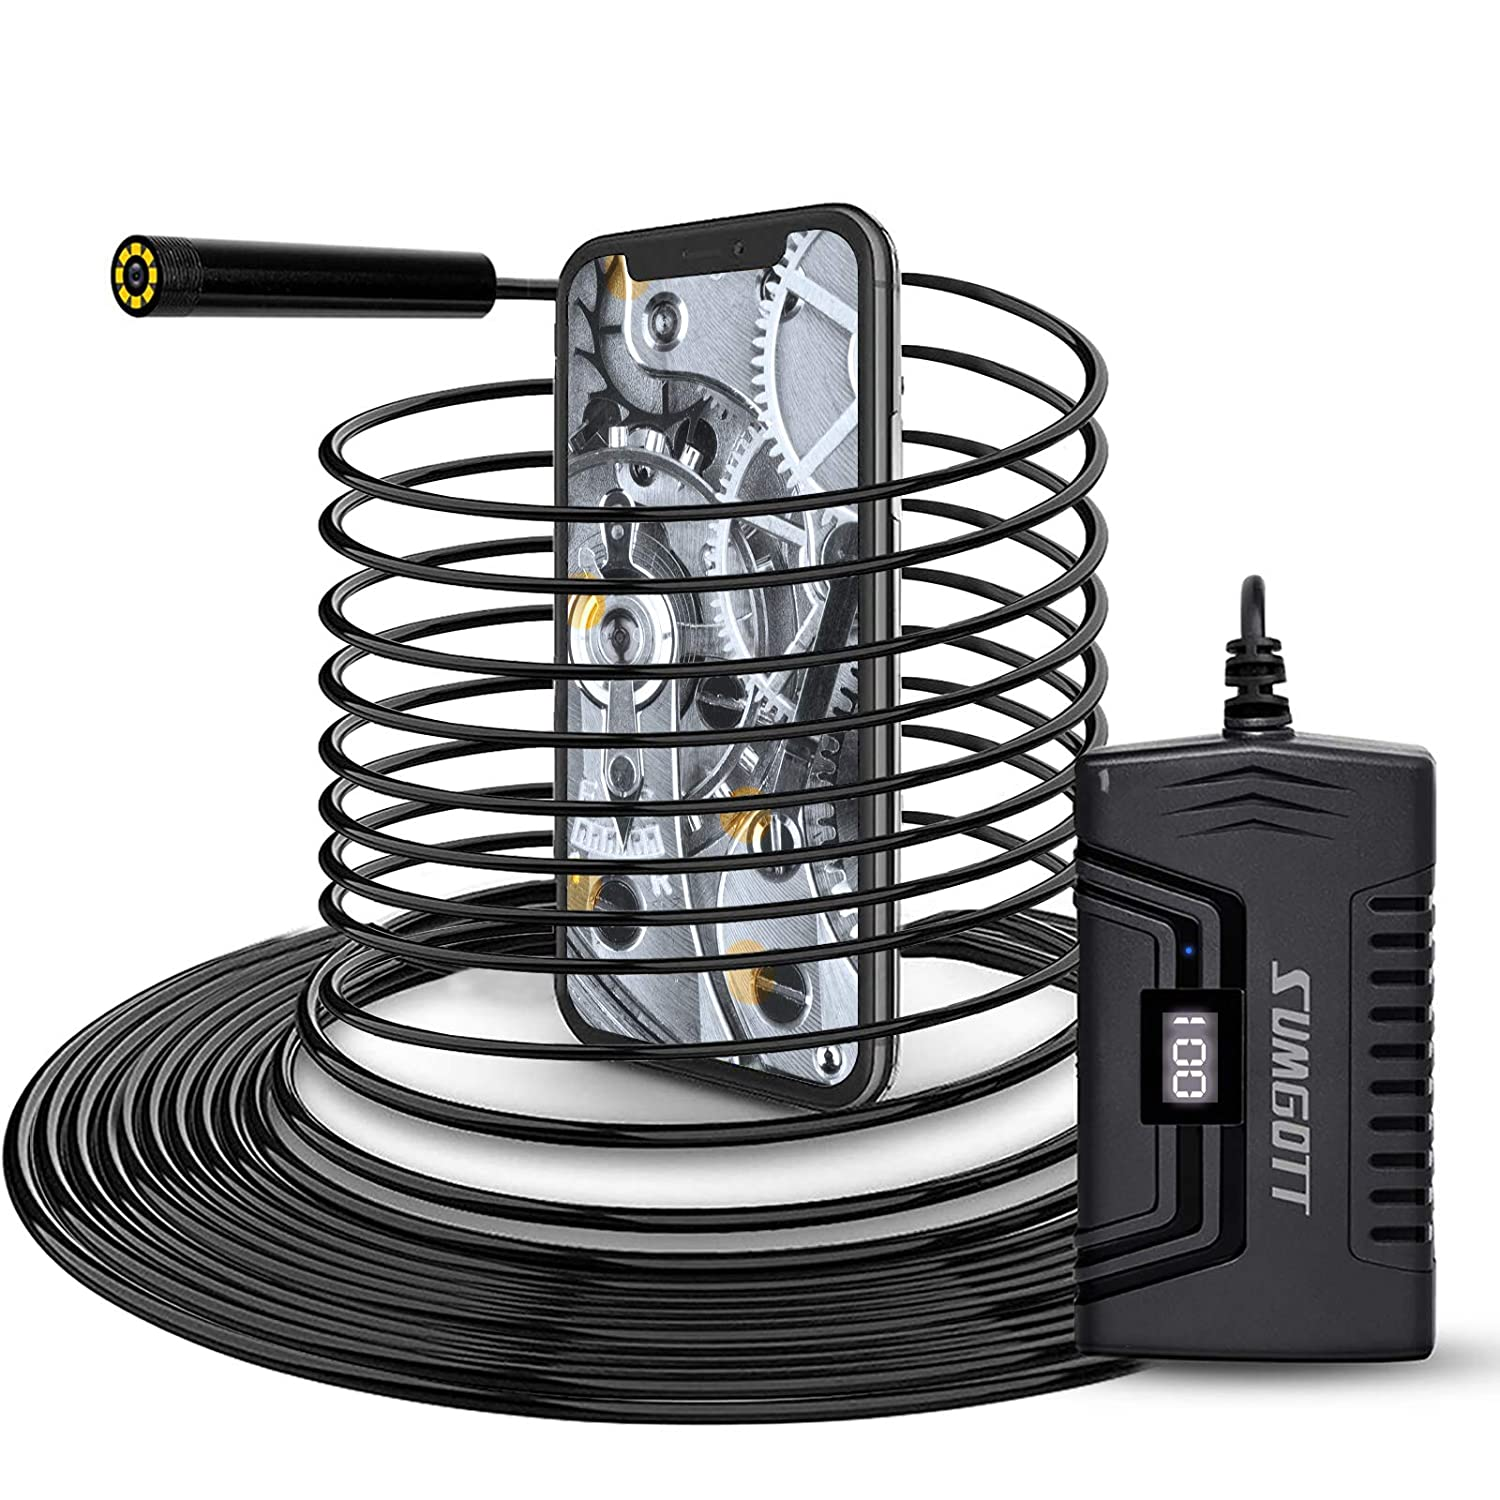 Best Endoscope for Iphone